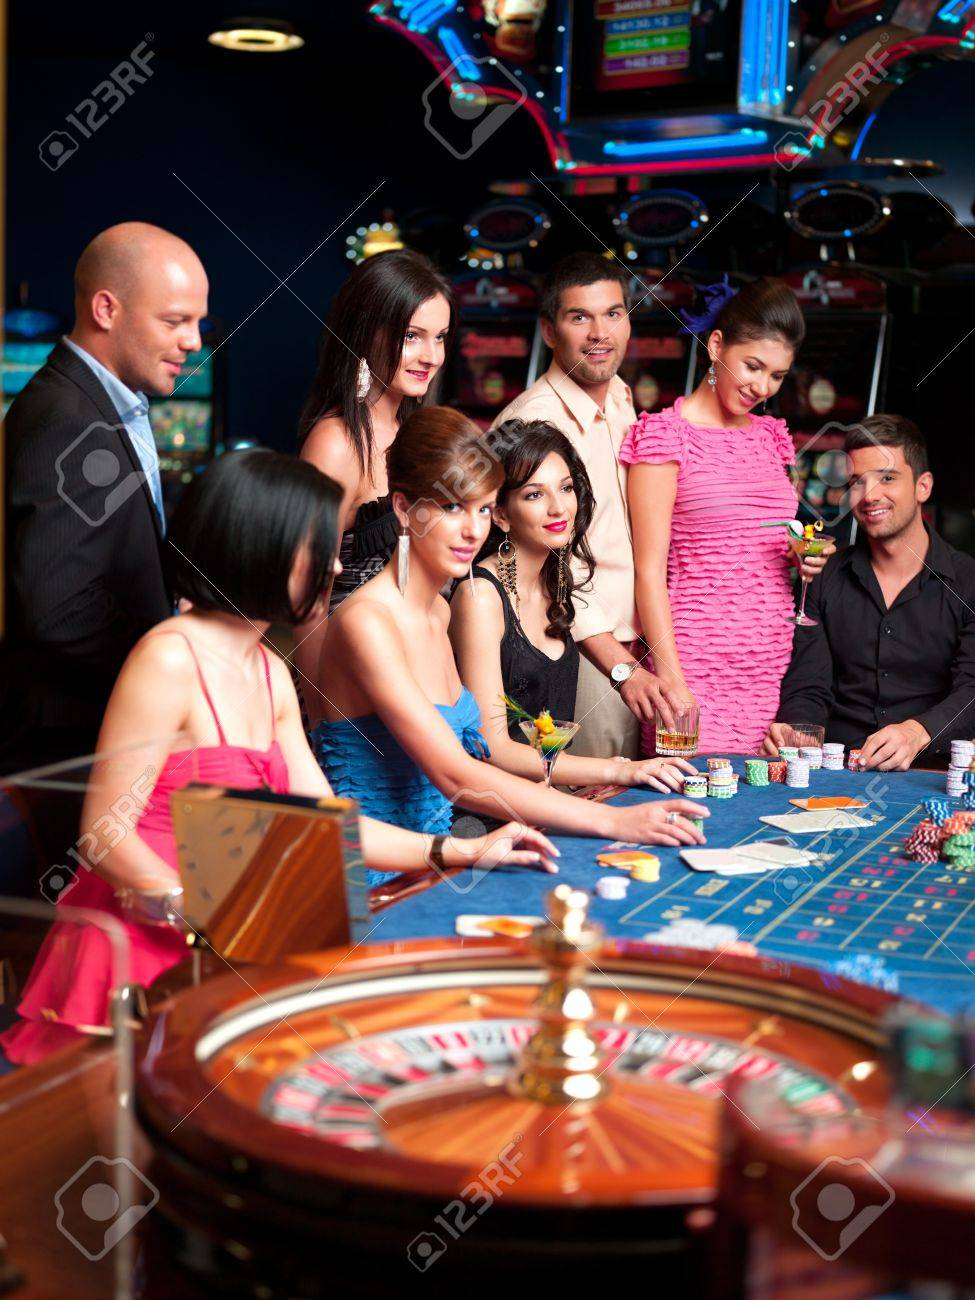 Group Of Casino Players Sitting At A Roulette Table Stock Photo, Picture  And Royalty Free Image. Image 10297737.